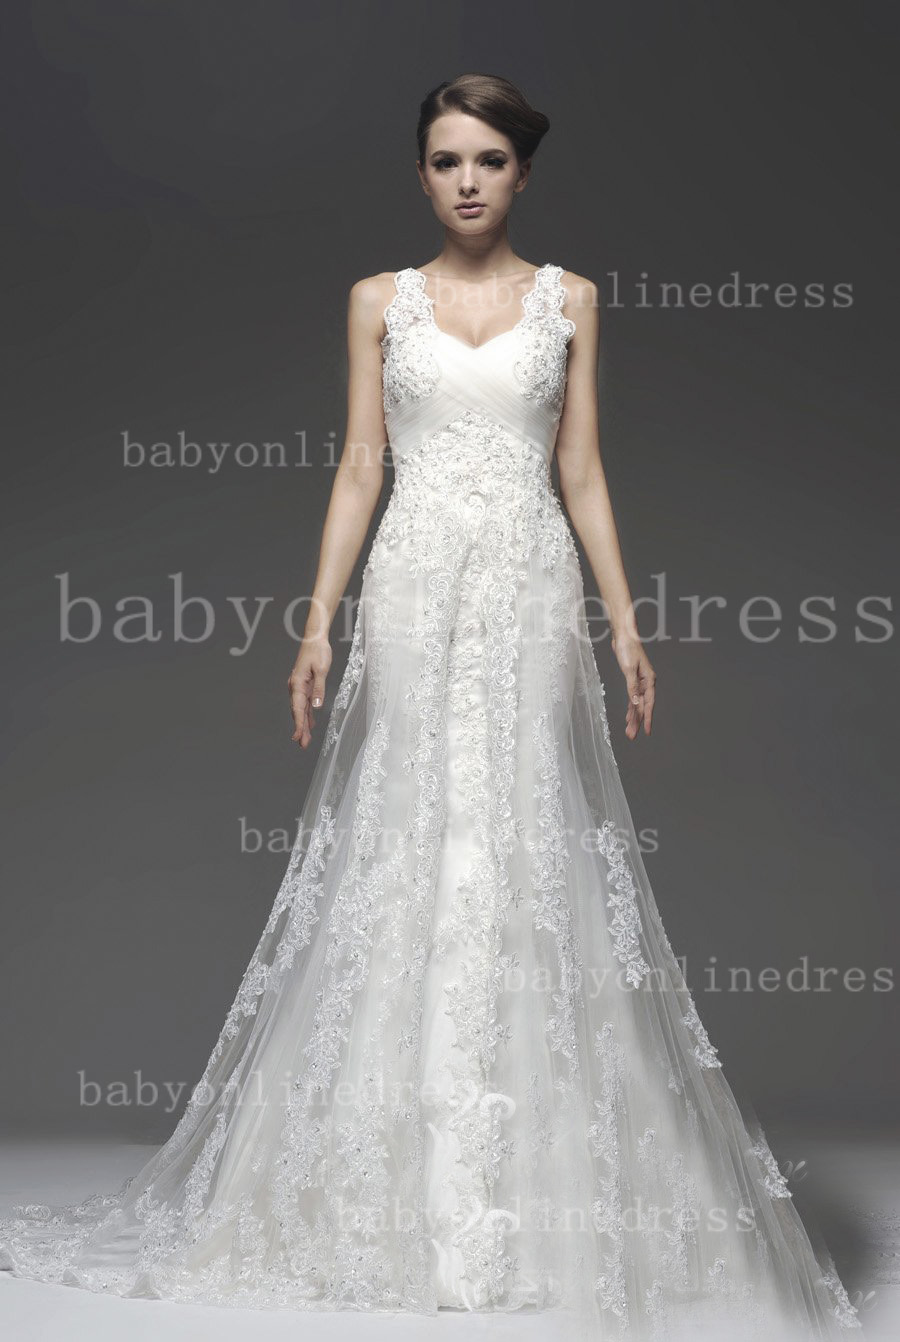 cheap wedding dresses for sale photo - 1